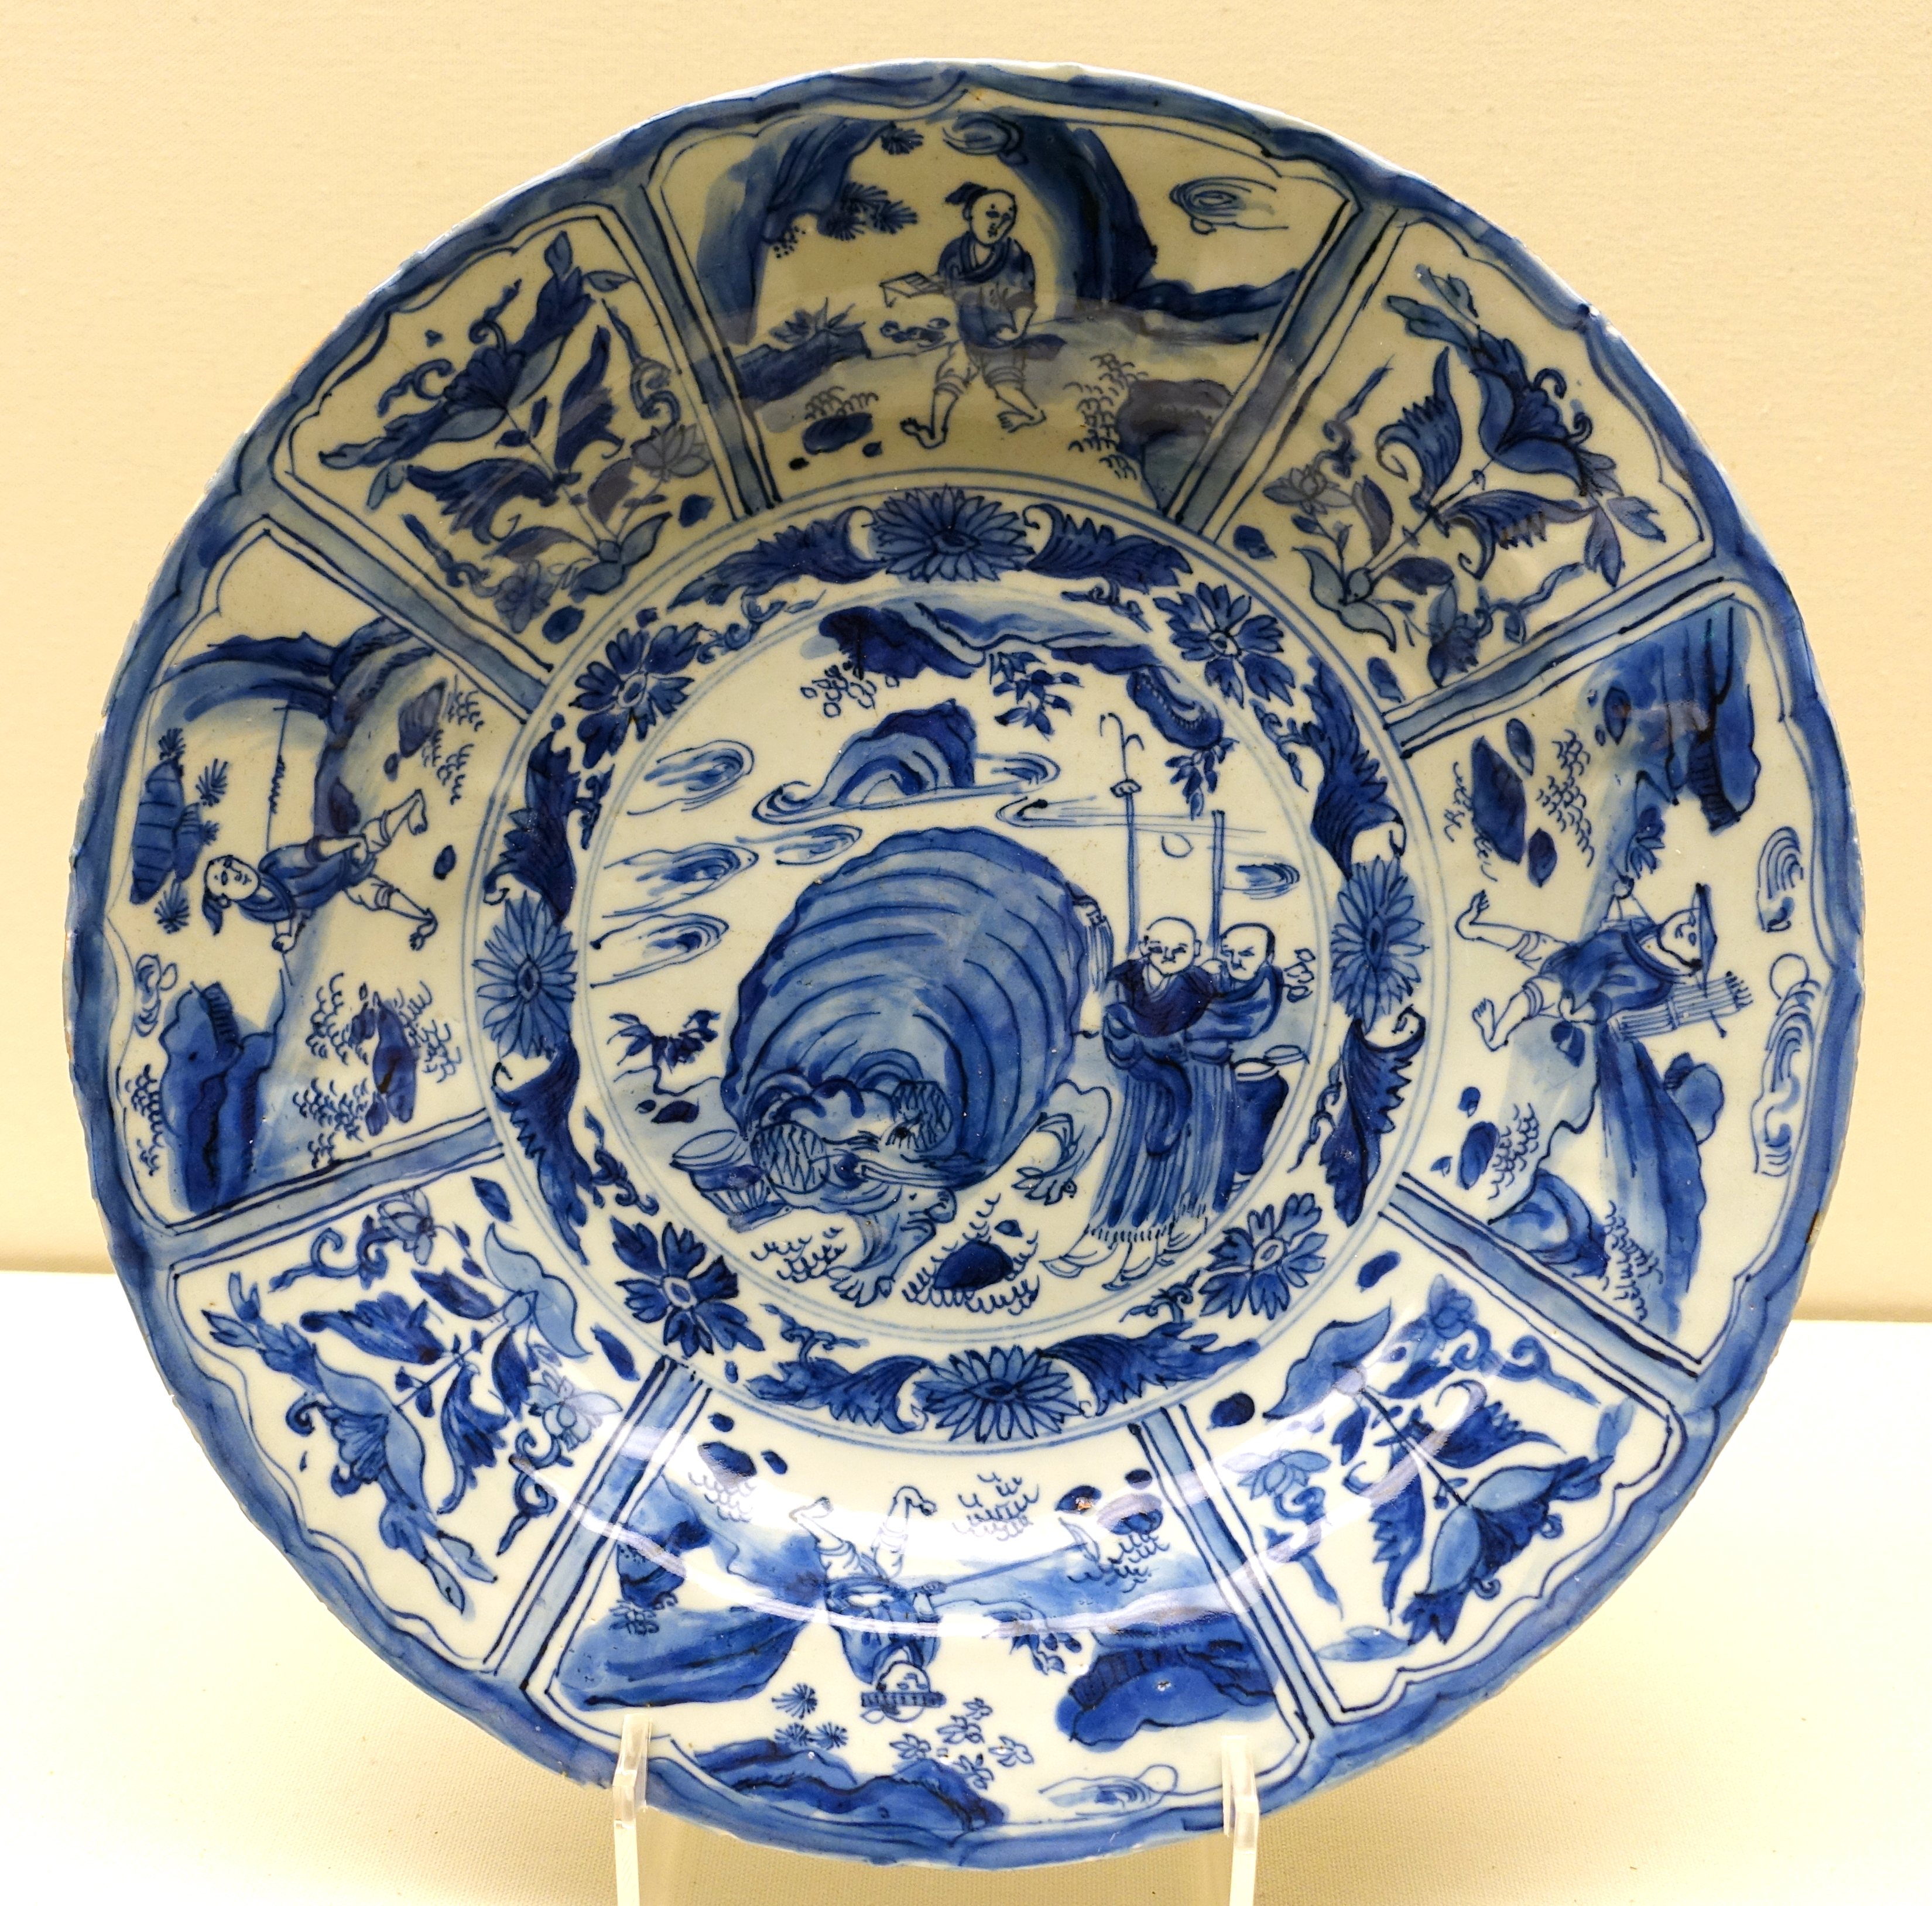 file dish china transitional period mid 17th century ad blue and